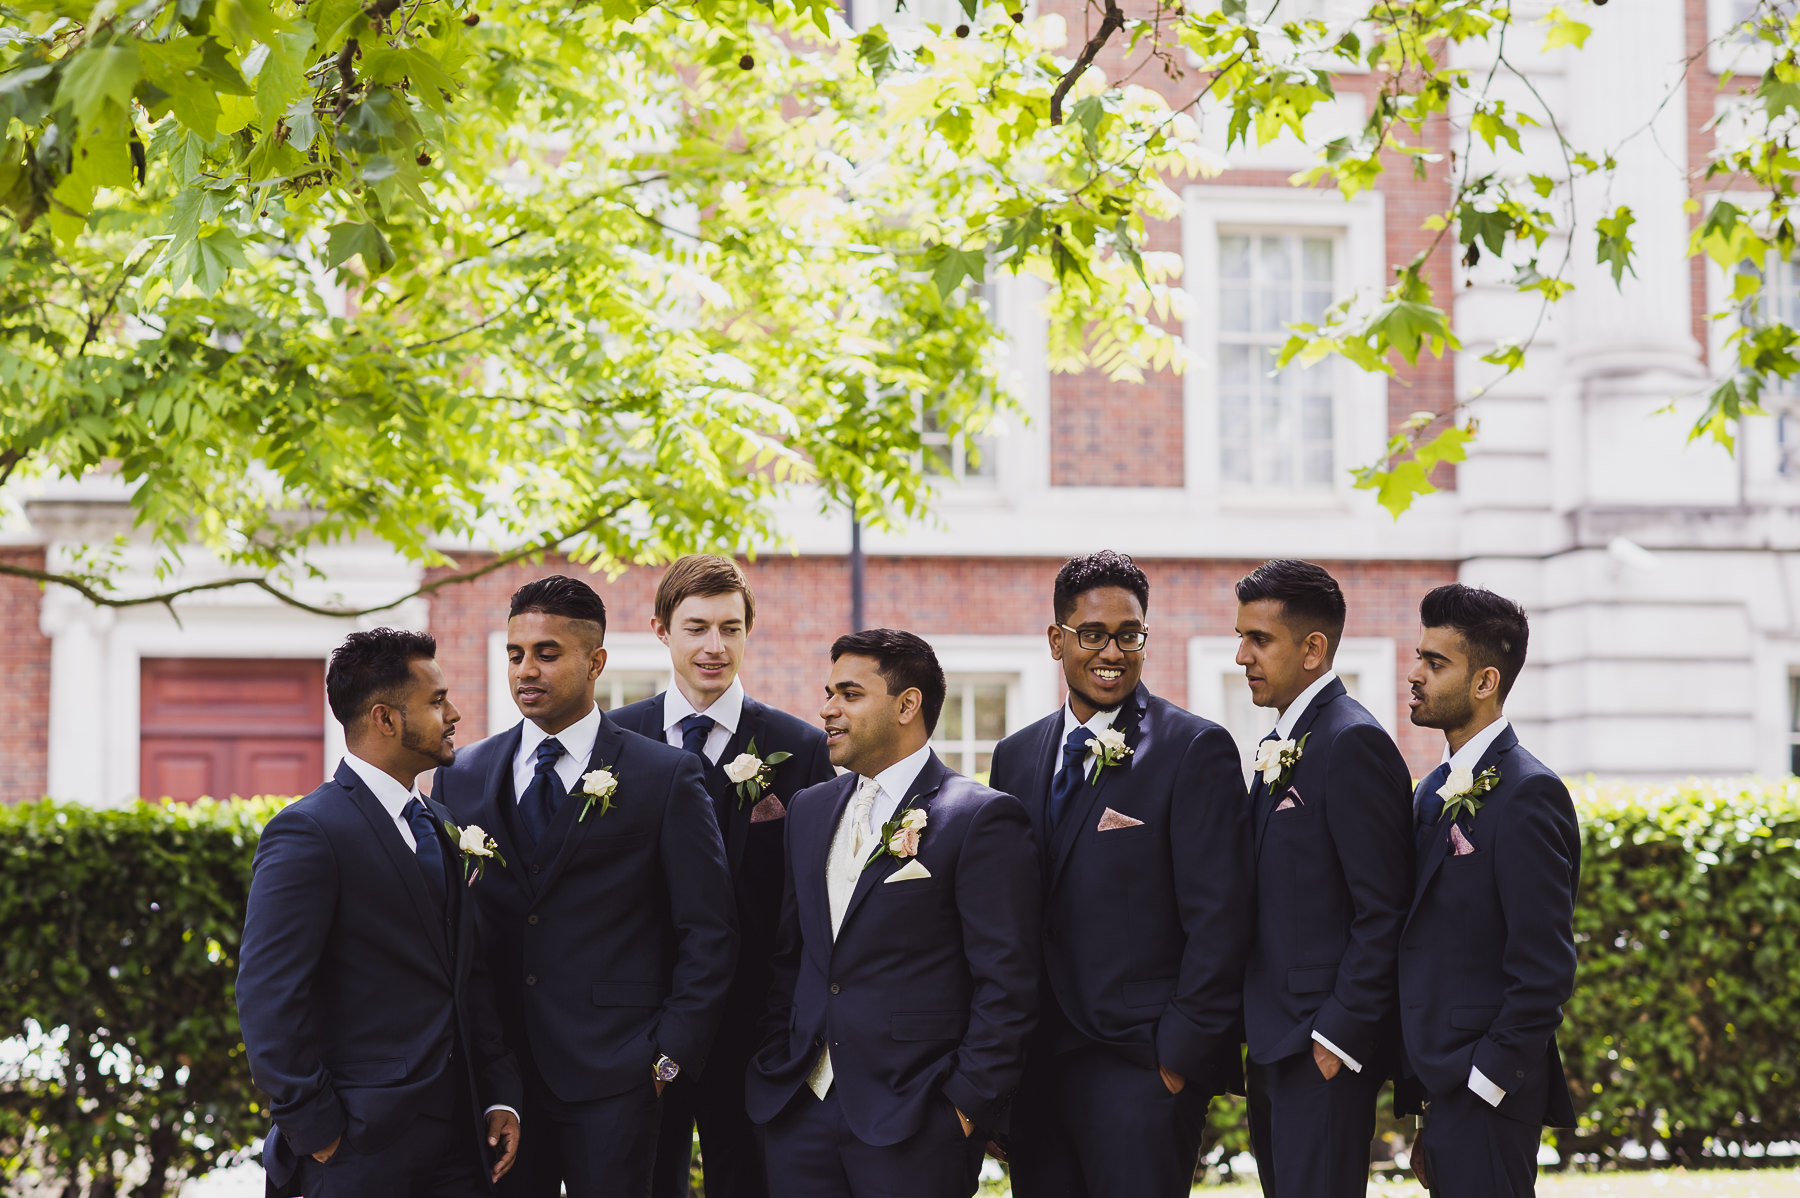 Mayfair Wedding Photographer Groomsmen